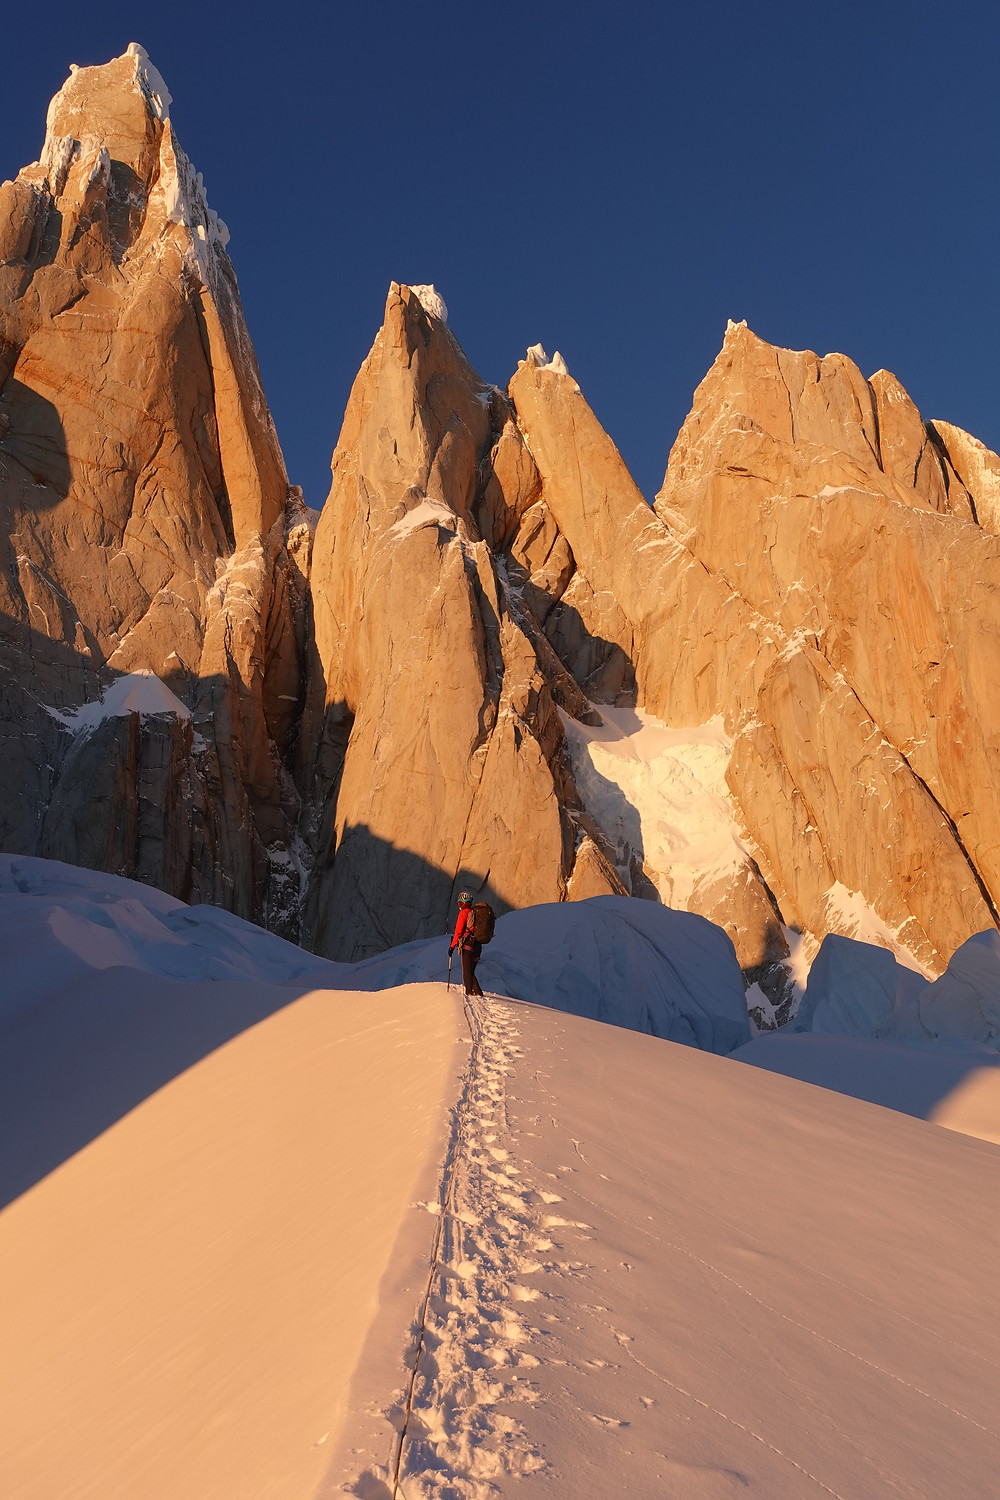 Brette harrington approaches MA's Vision on Torre Egger with Cerro Torre (left) and Cerro Standhart (right). Photo: Quentin Roberts